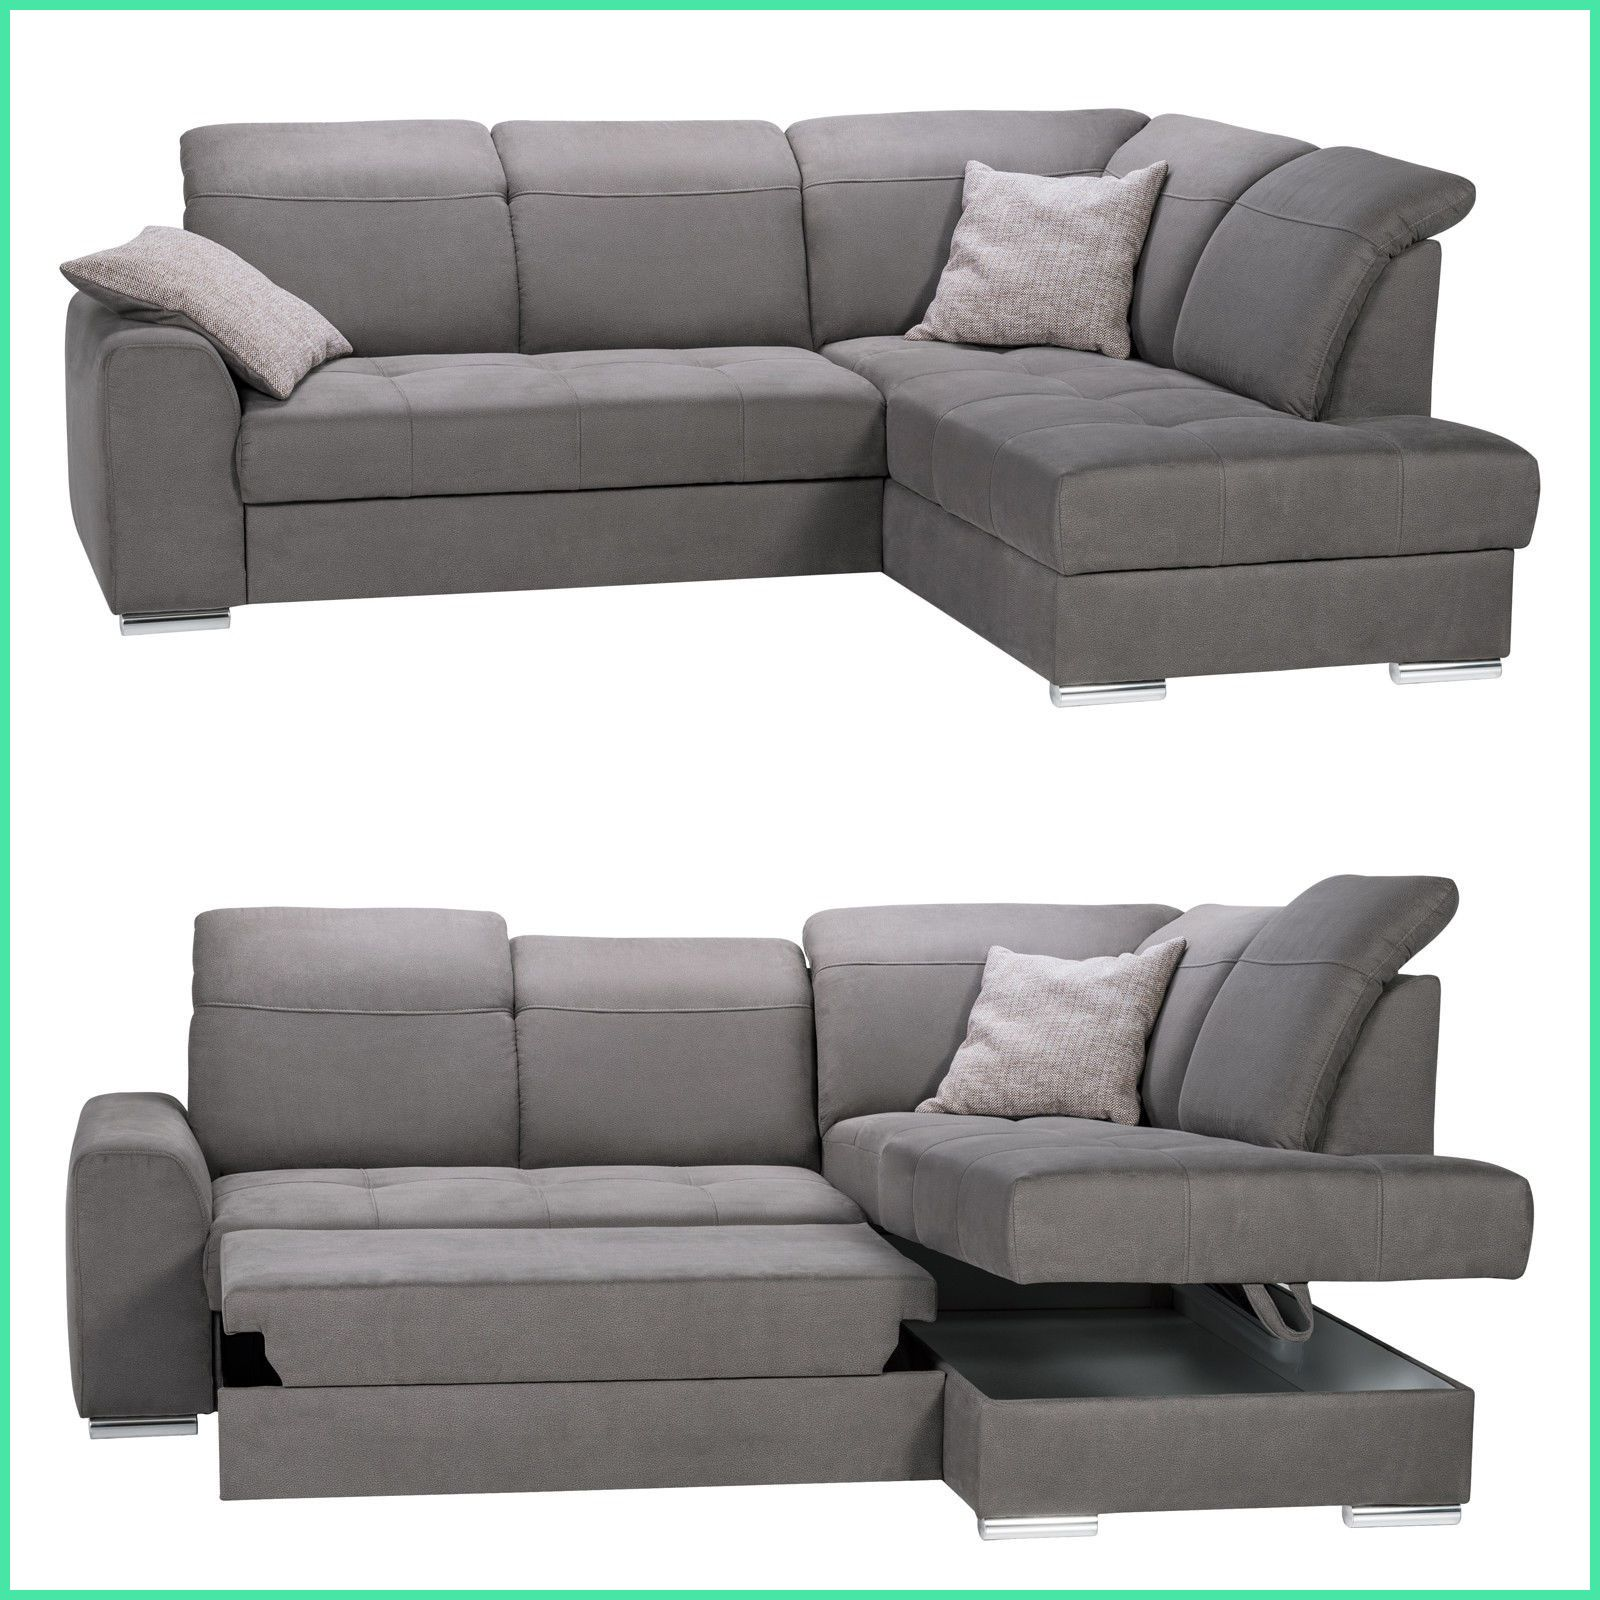 17 Antik Eckcouch Schlaffunktion In 2020 Home Decor Couch Sectional Couch